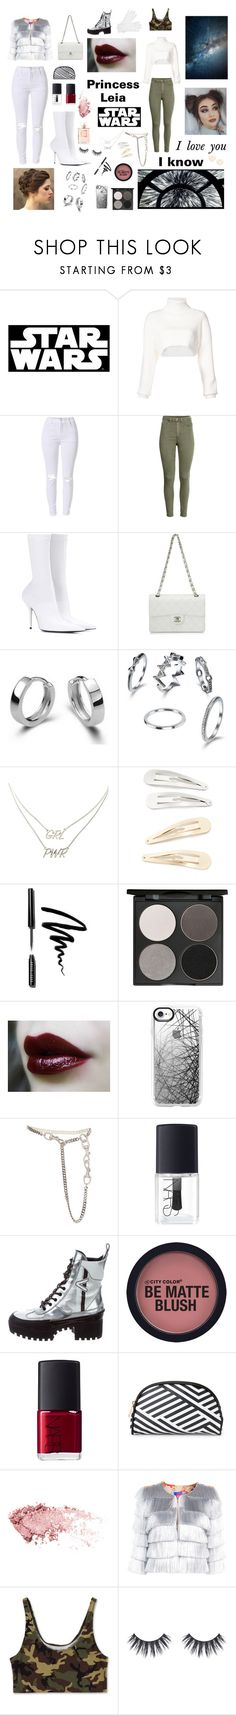 """""""Star Wars- Leia"""" by darkpastel ❤ liked on Polyvore featuring Hallmark, Alexandre Vauthier, Balenciaga, Chanel, Charlotte Russe, Kitsch, Bobbi Brown Cosmetics, Gorgeous Cosmetics, Casetify and Christian Dior"""